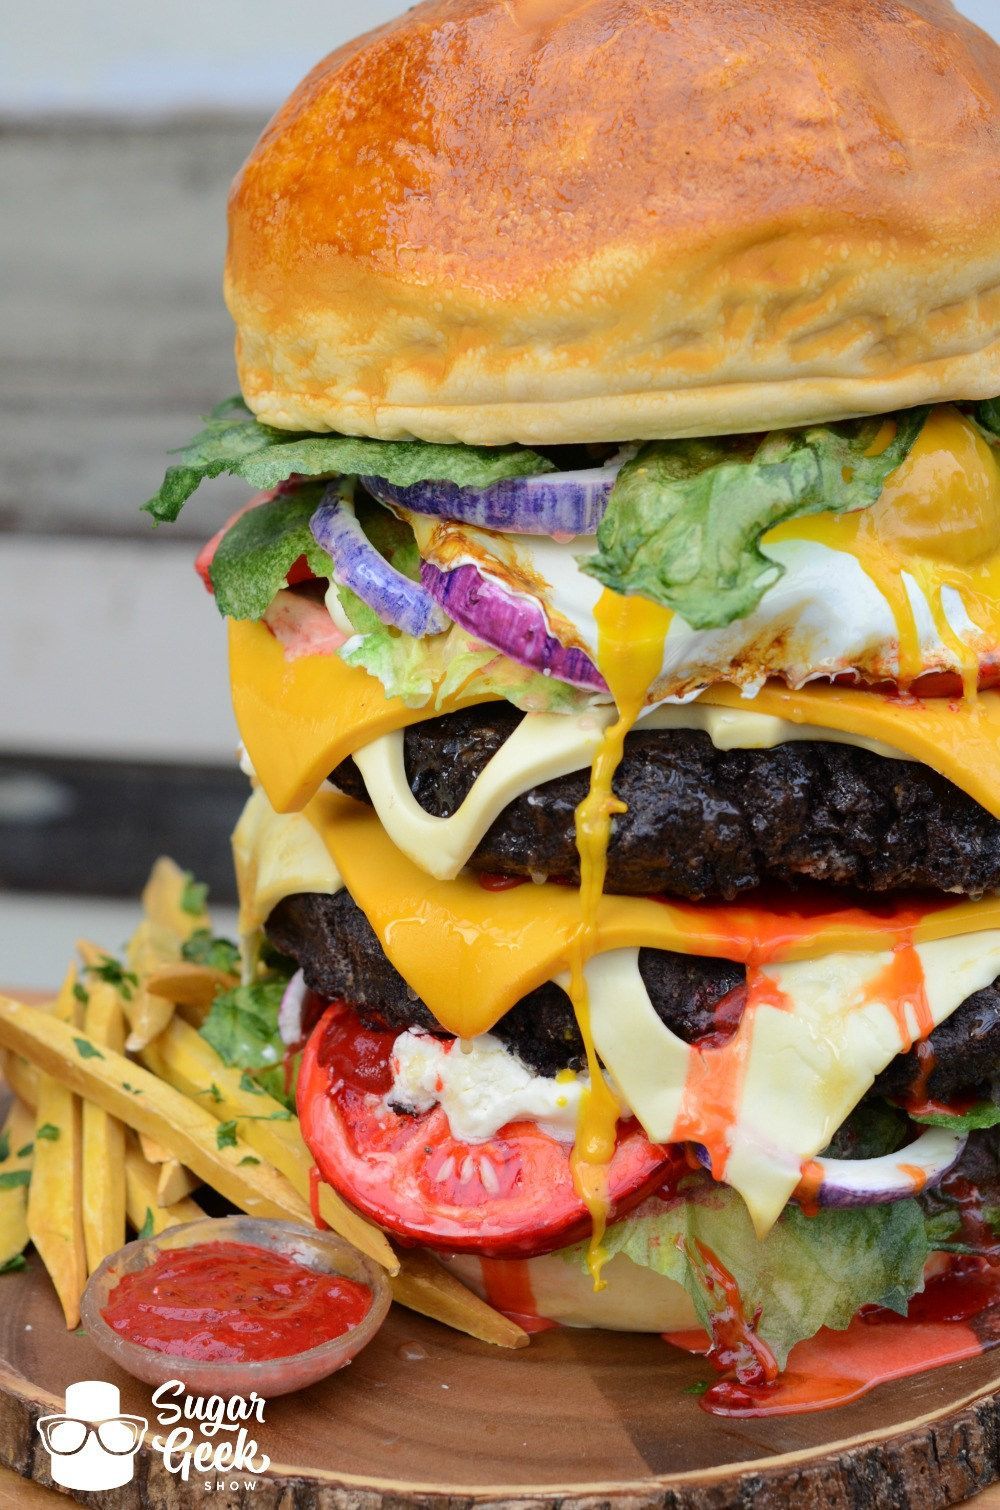 Check out this giant burger thats actually a cake